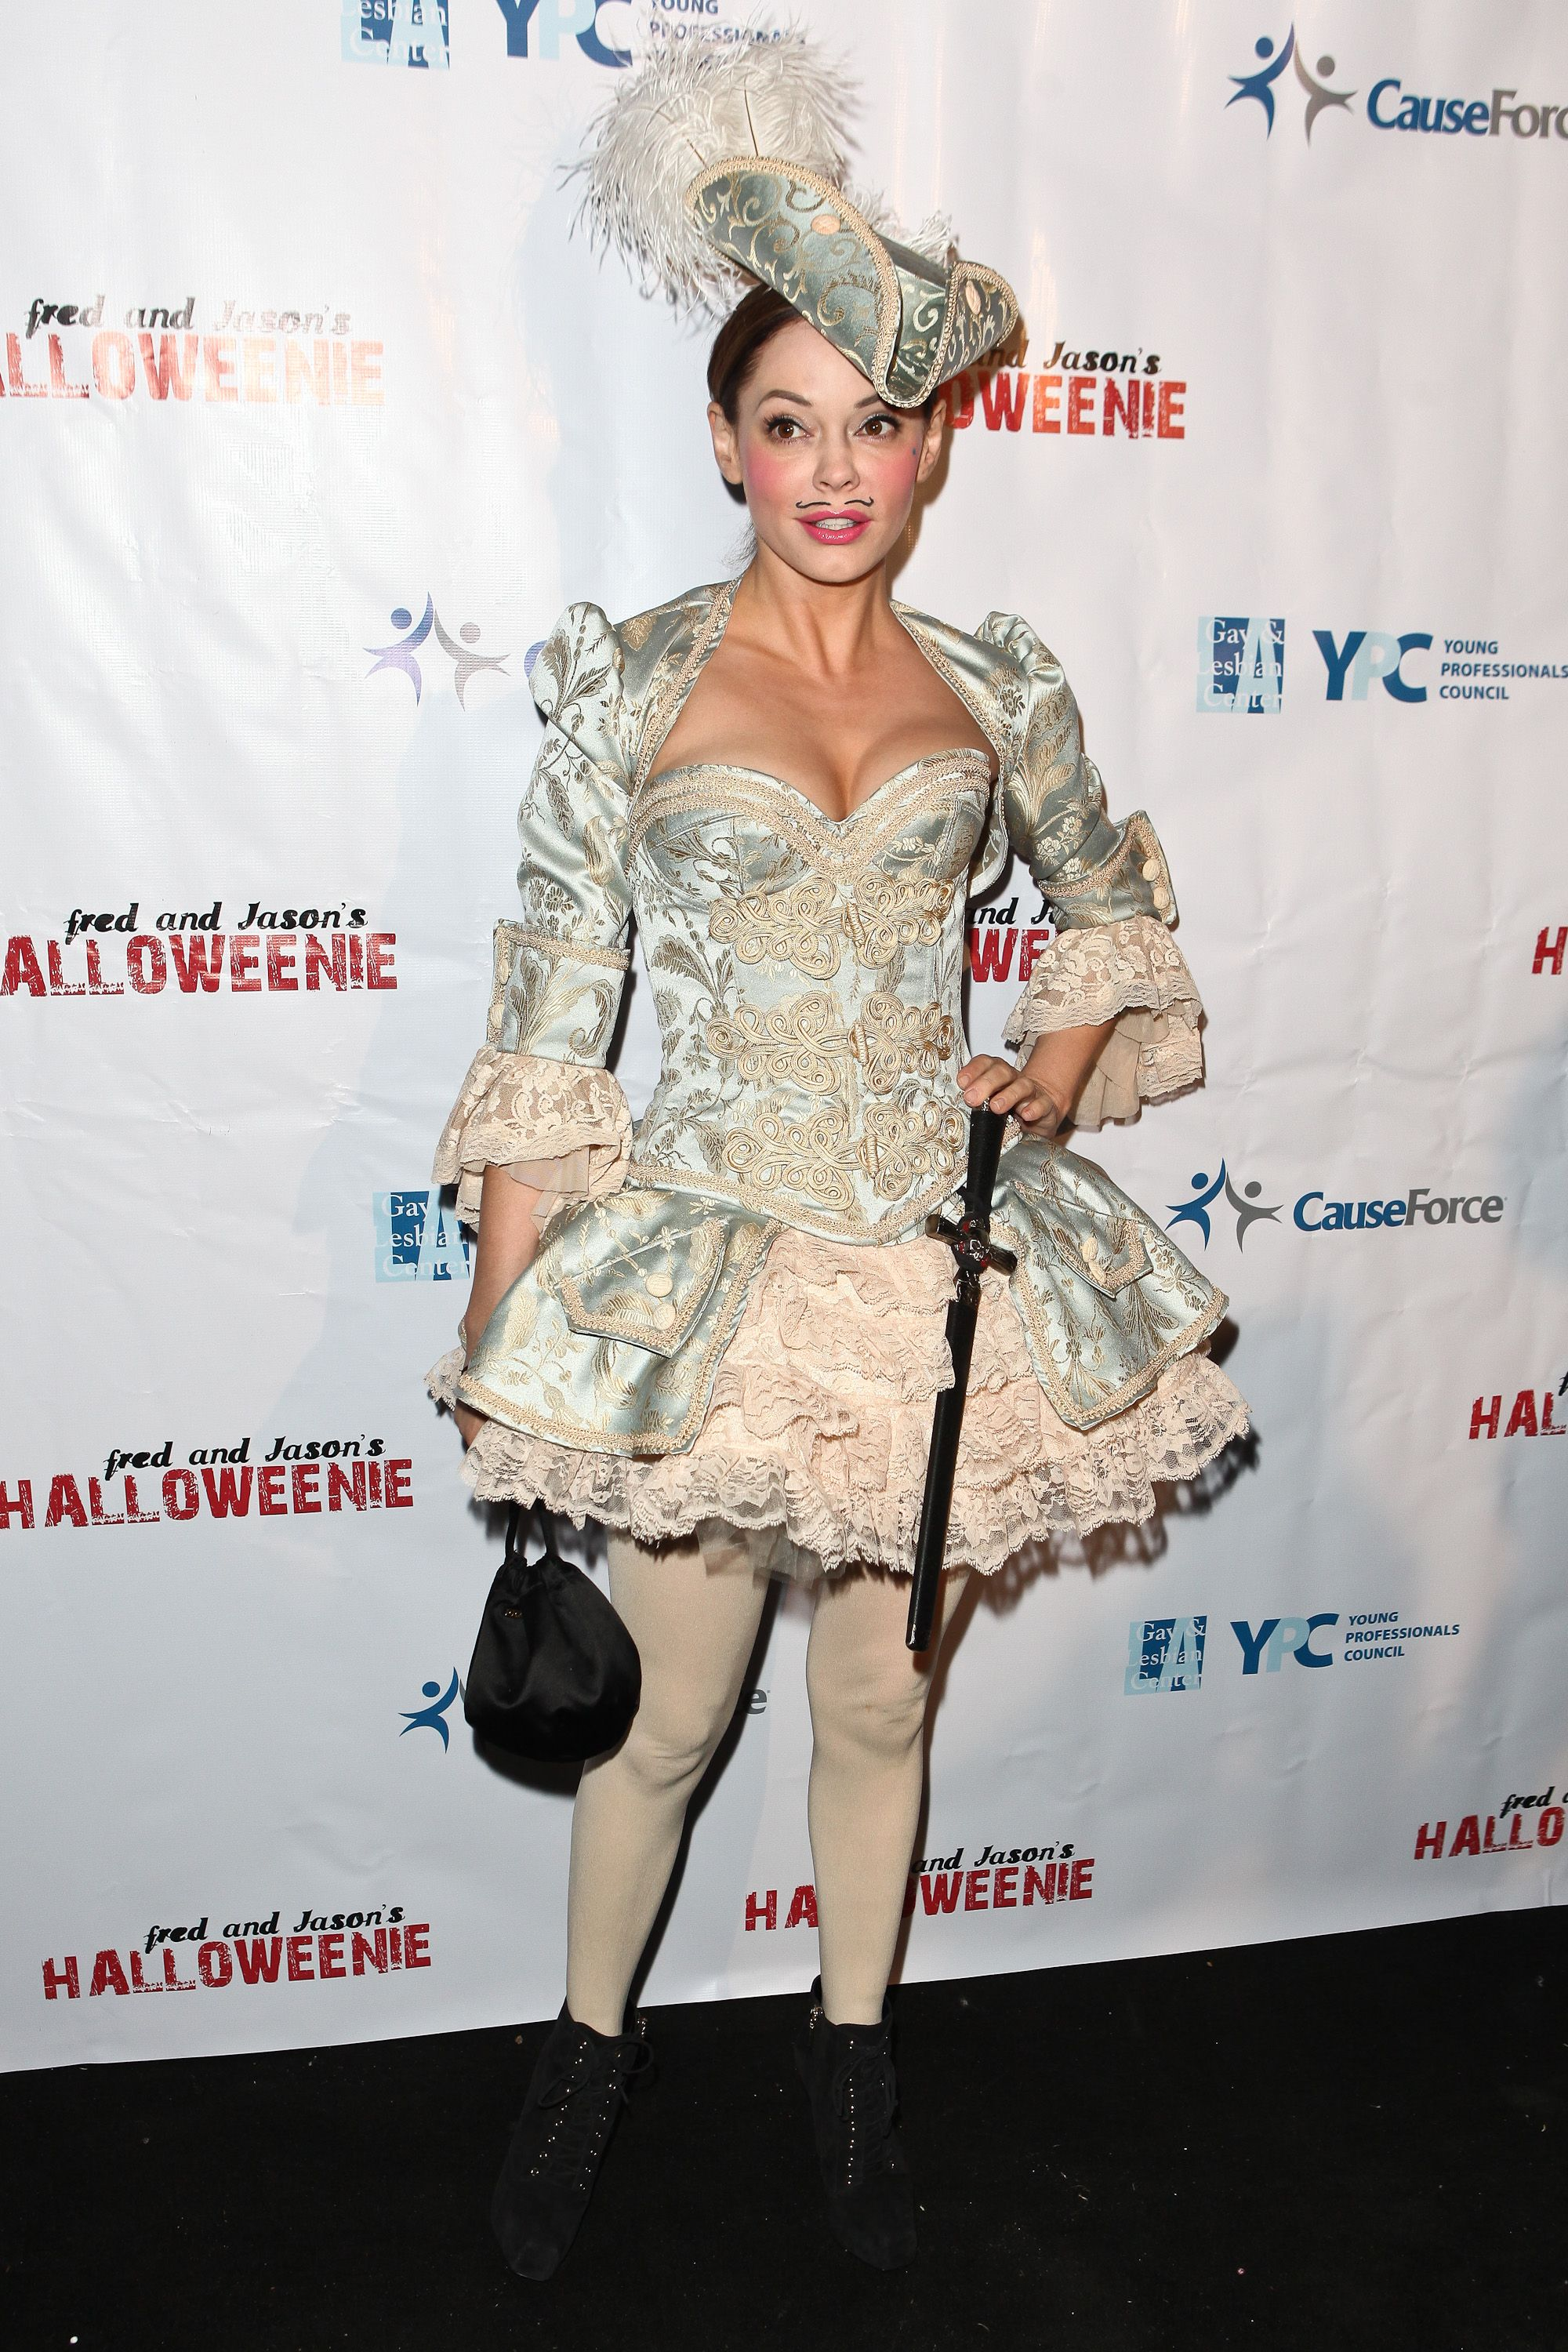 Rose McGowan at Los Angeles Gay and Lesbian Centers Annual Halloweenie Party